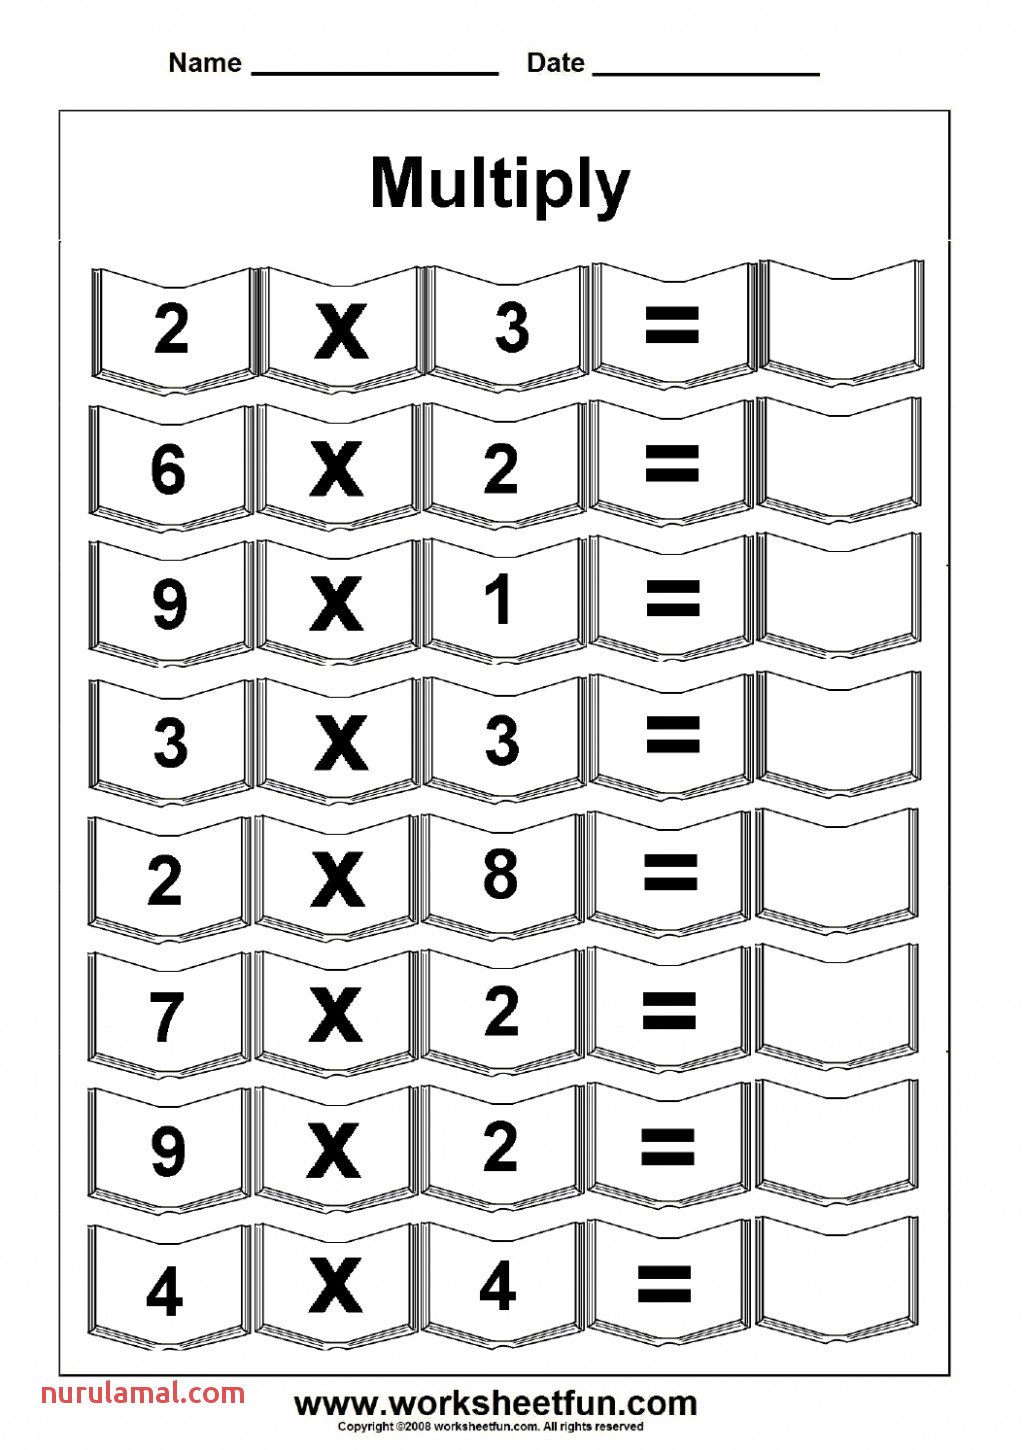 Worksheet Ideas Free Printable Multiplication Worksheets